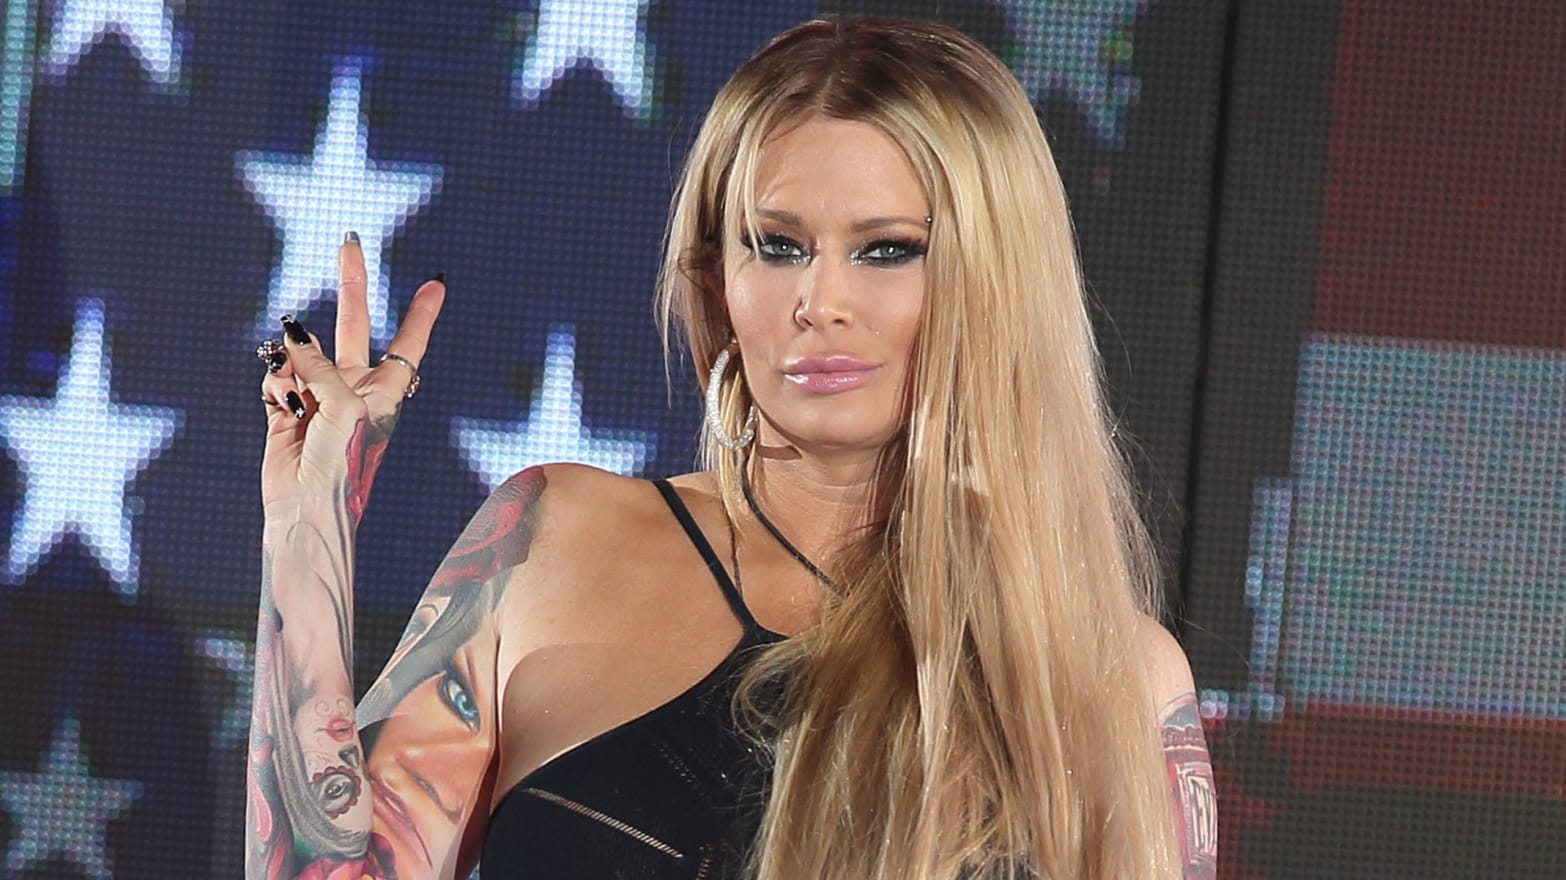 Jenna Jameson Defends Milo and the KKK, Slams Keith Ellison in Anti-Muslim  Tirade